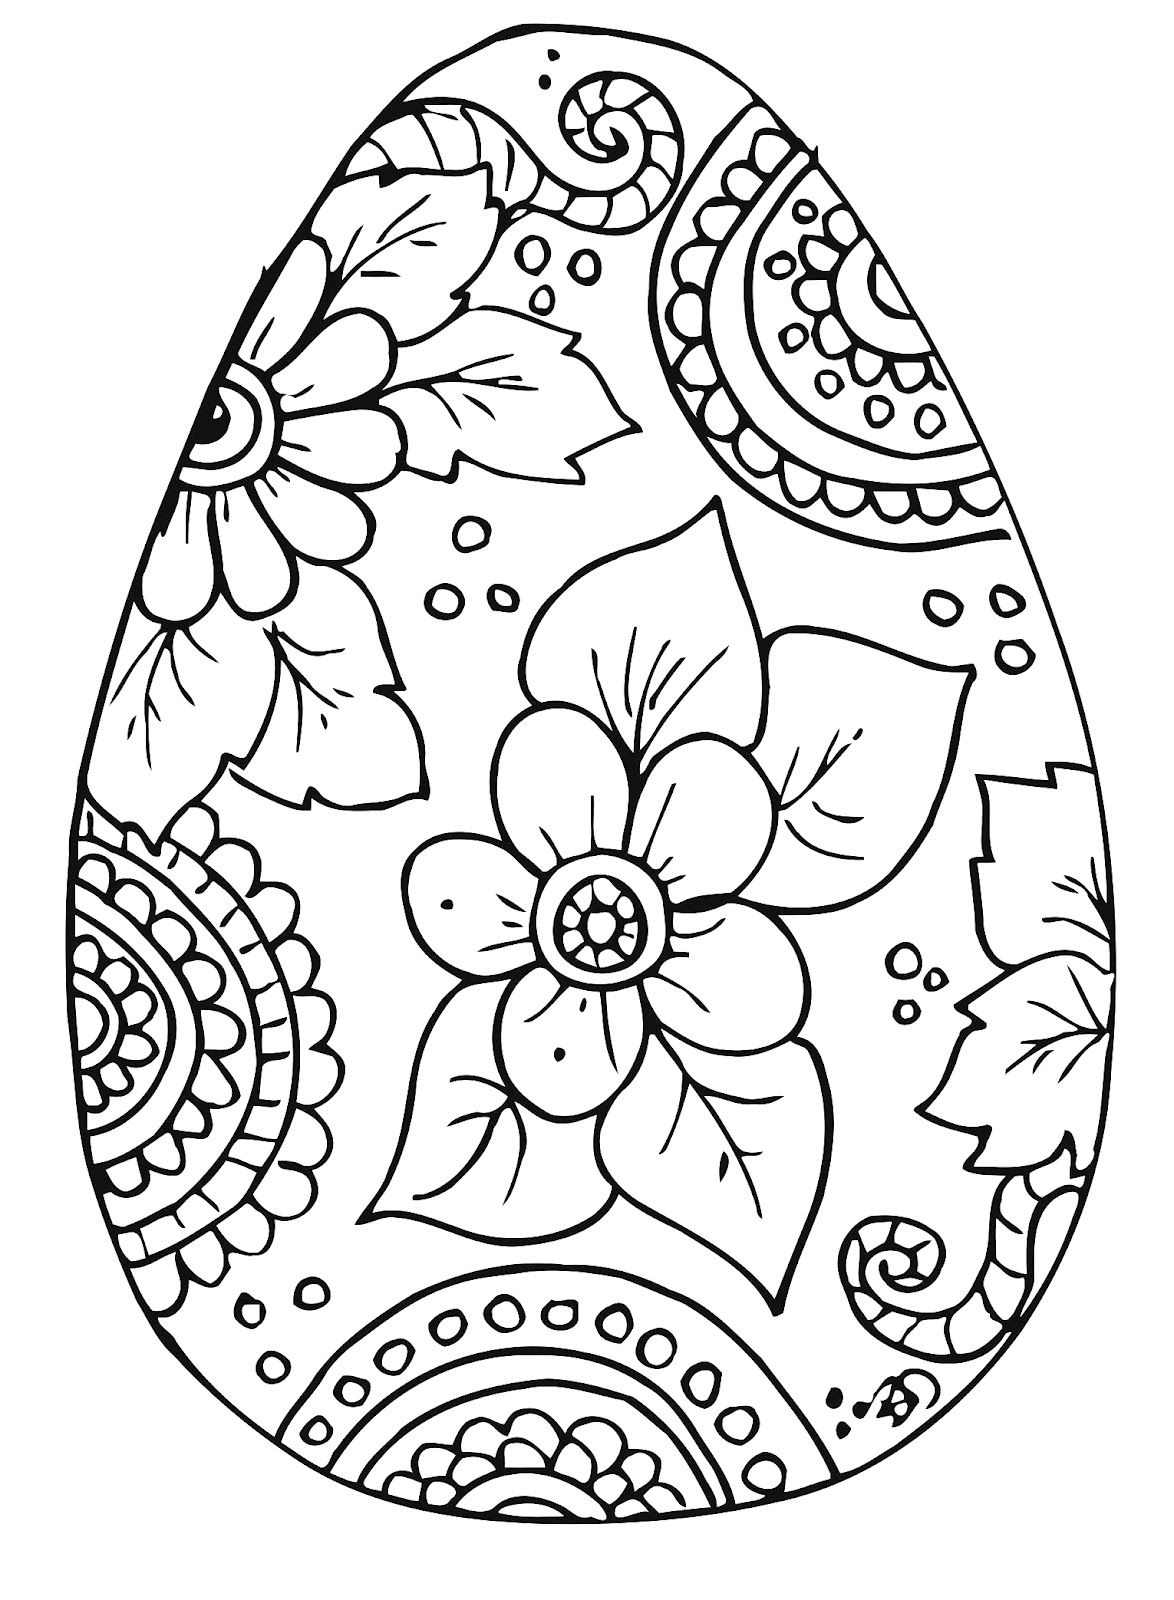 10 Cool Free Printable Easter Coloring Pages For Kids Who've Moved - Free Easter Color Pages Printable